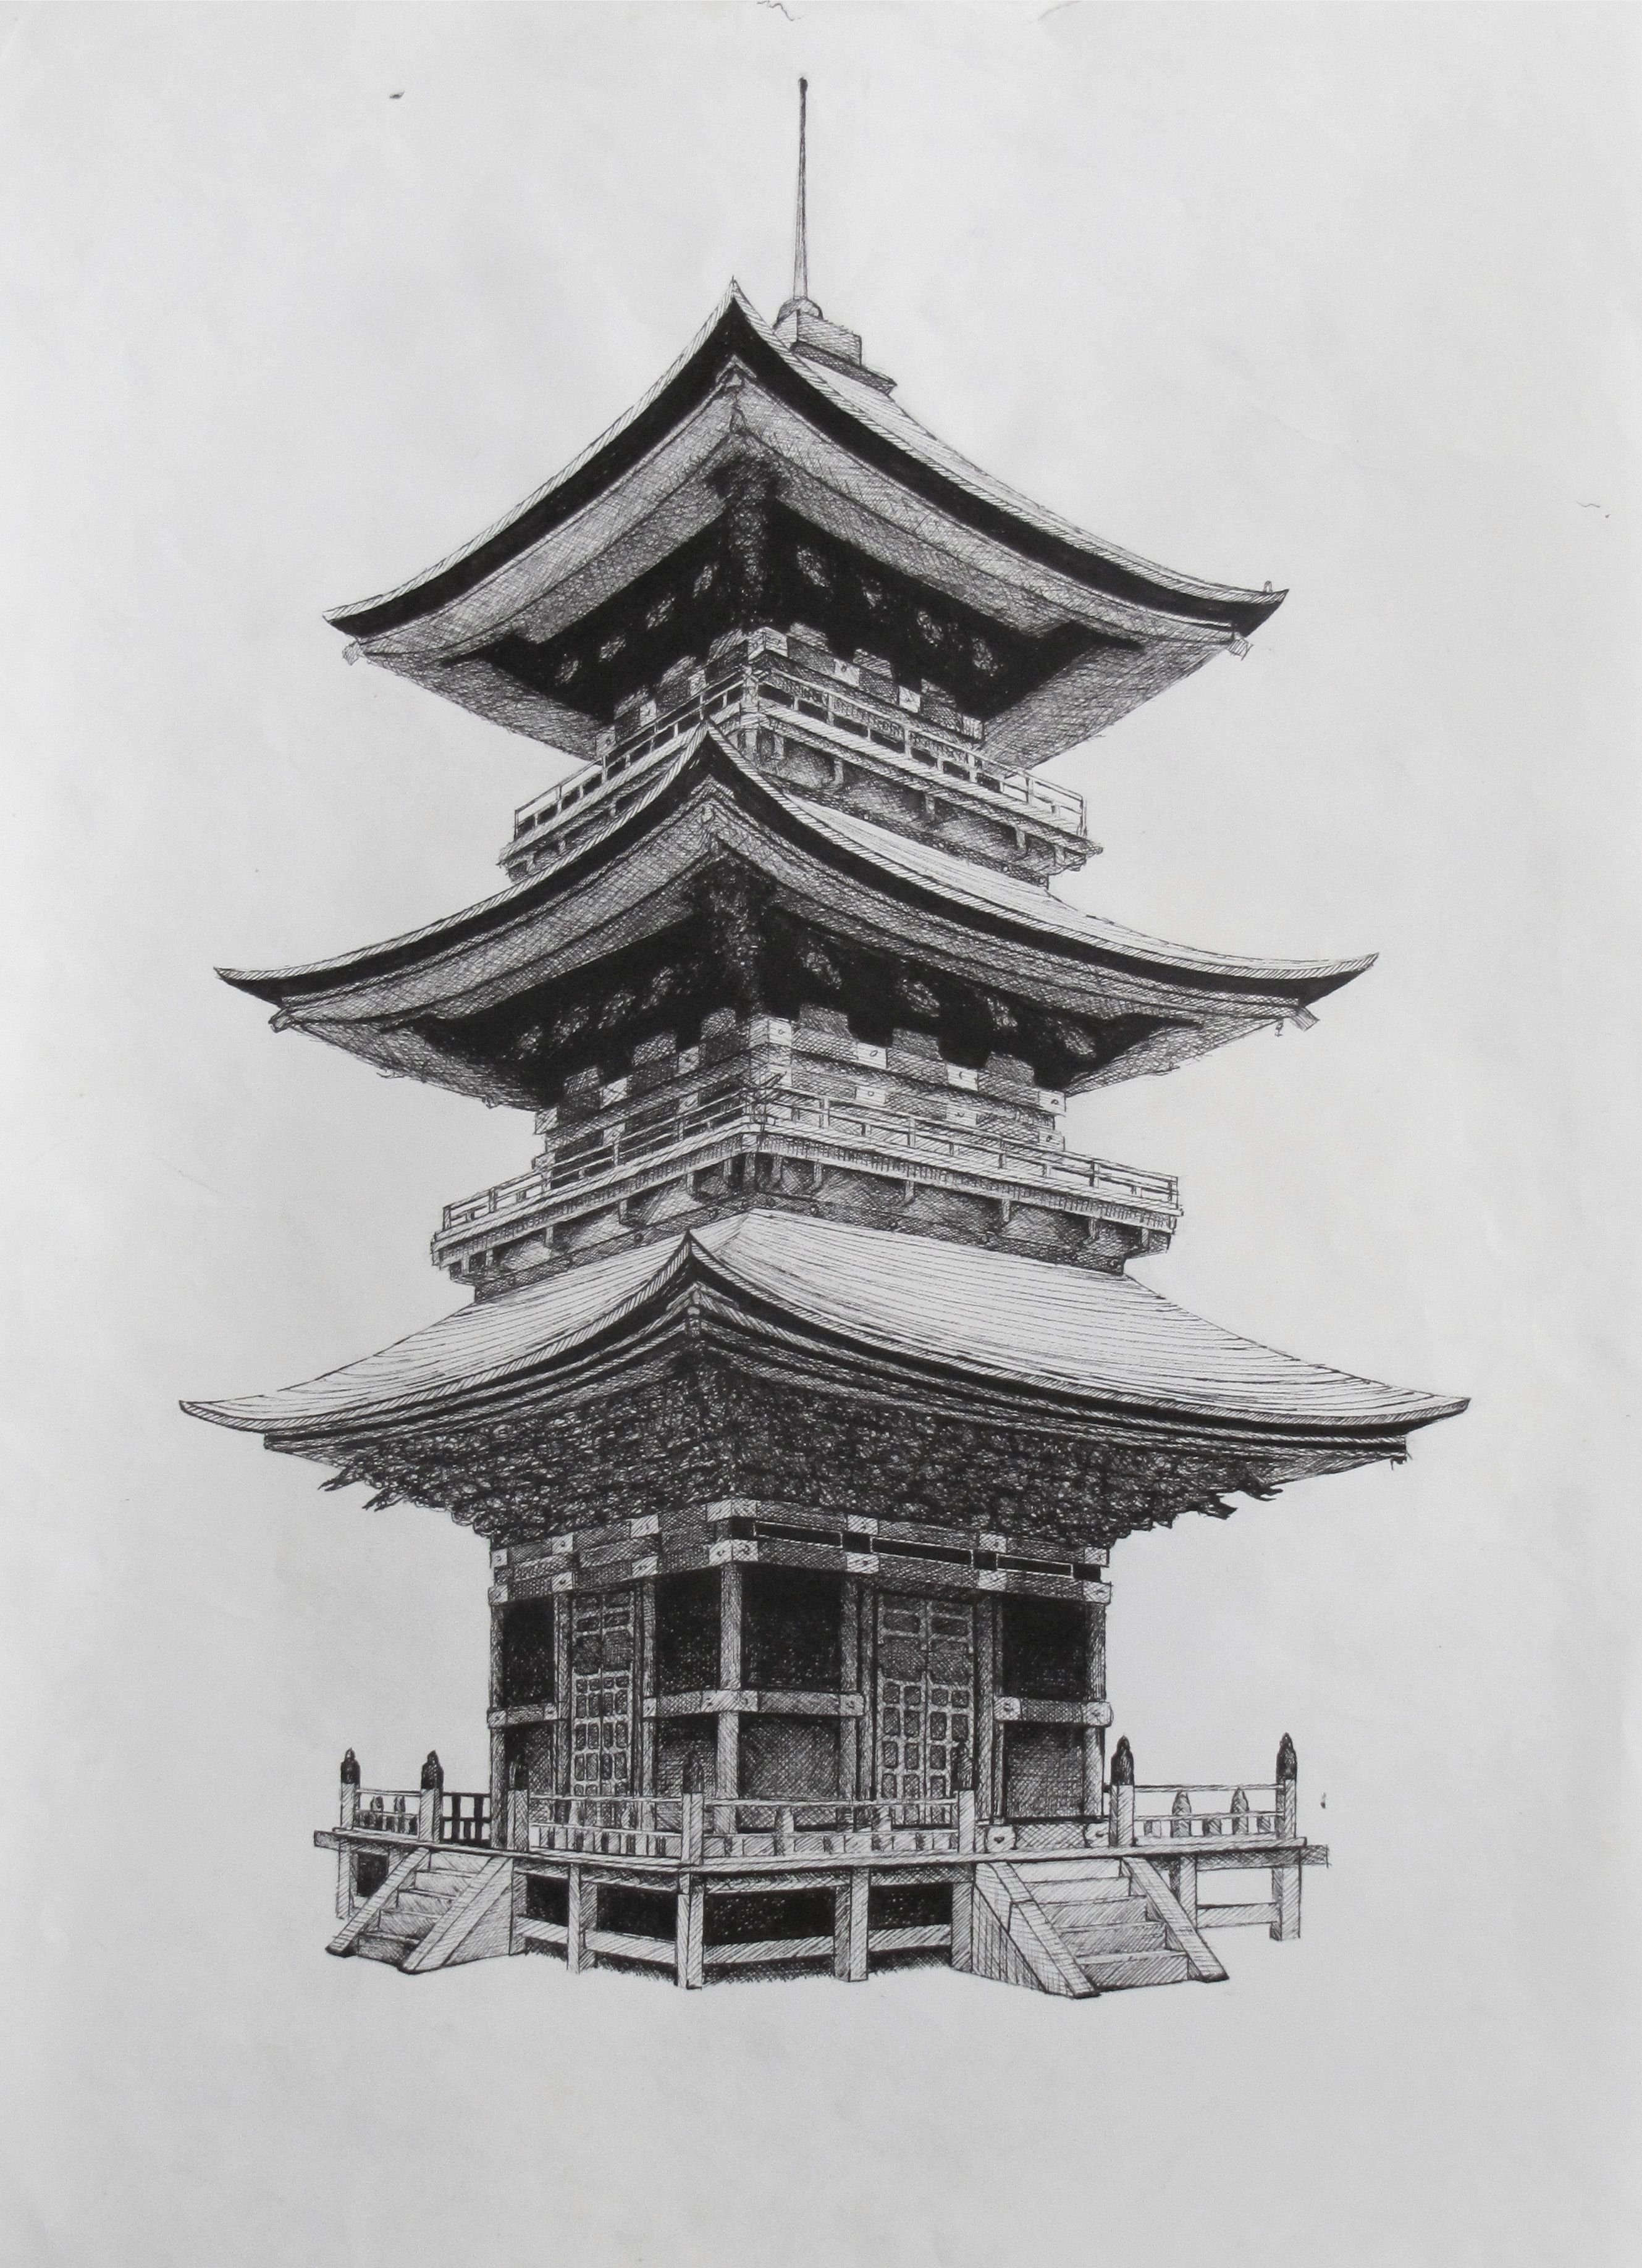 Japanese Temple By Suraj28 D5b1on1 2 658x3 672